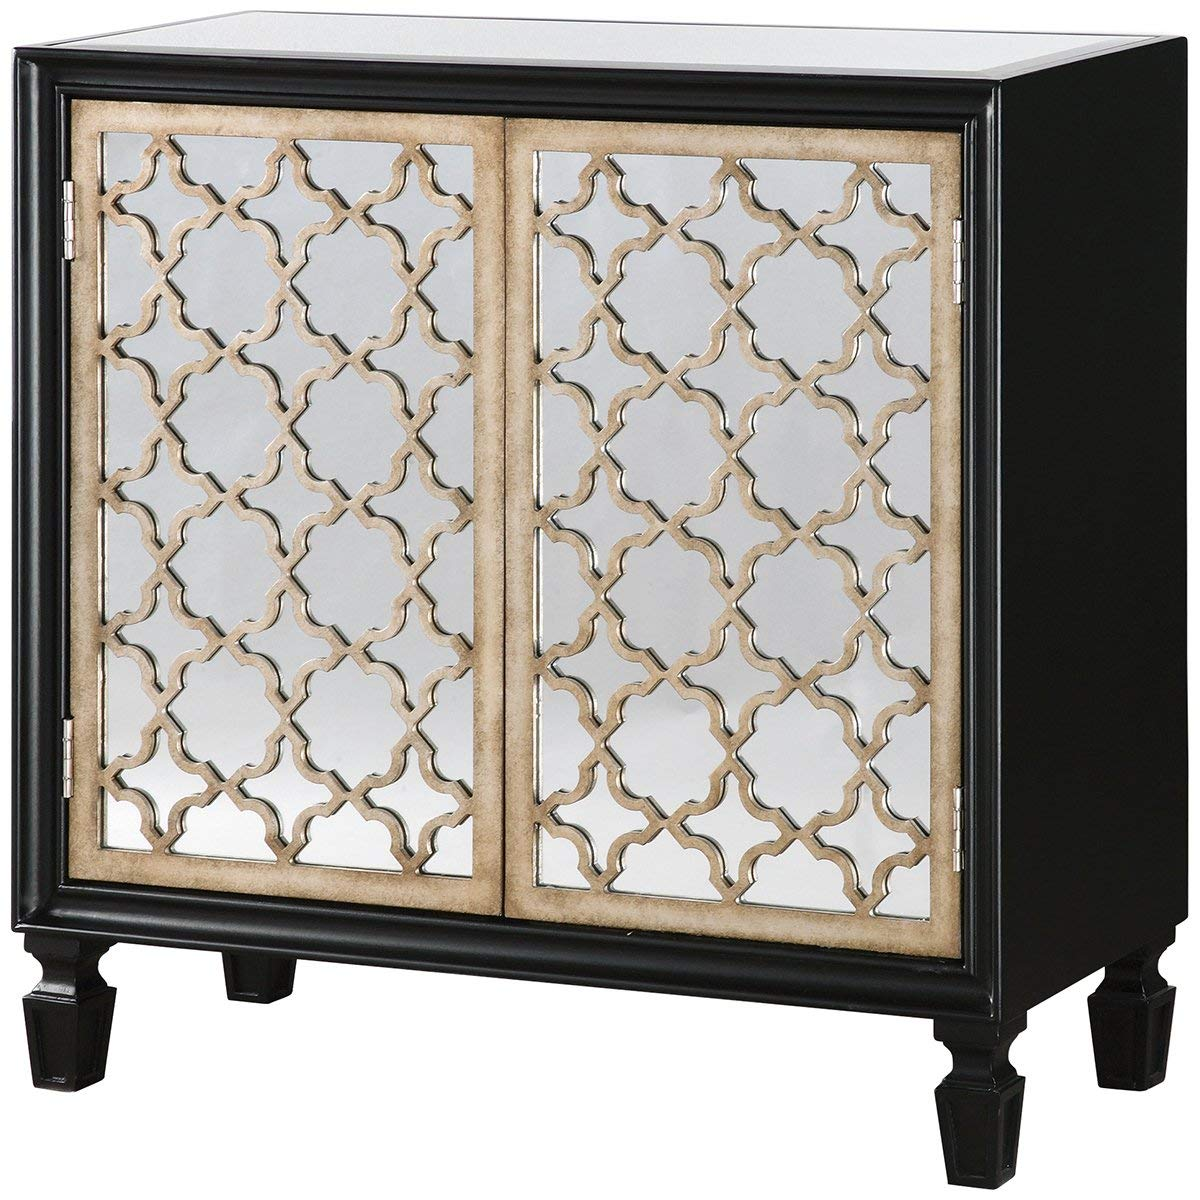 Uttermost Franzea Mirrored Console Cabinet, Black by Uttermost